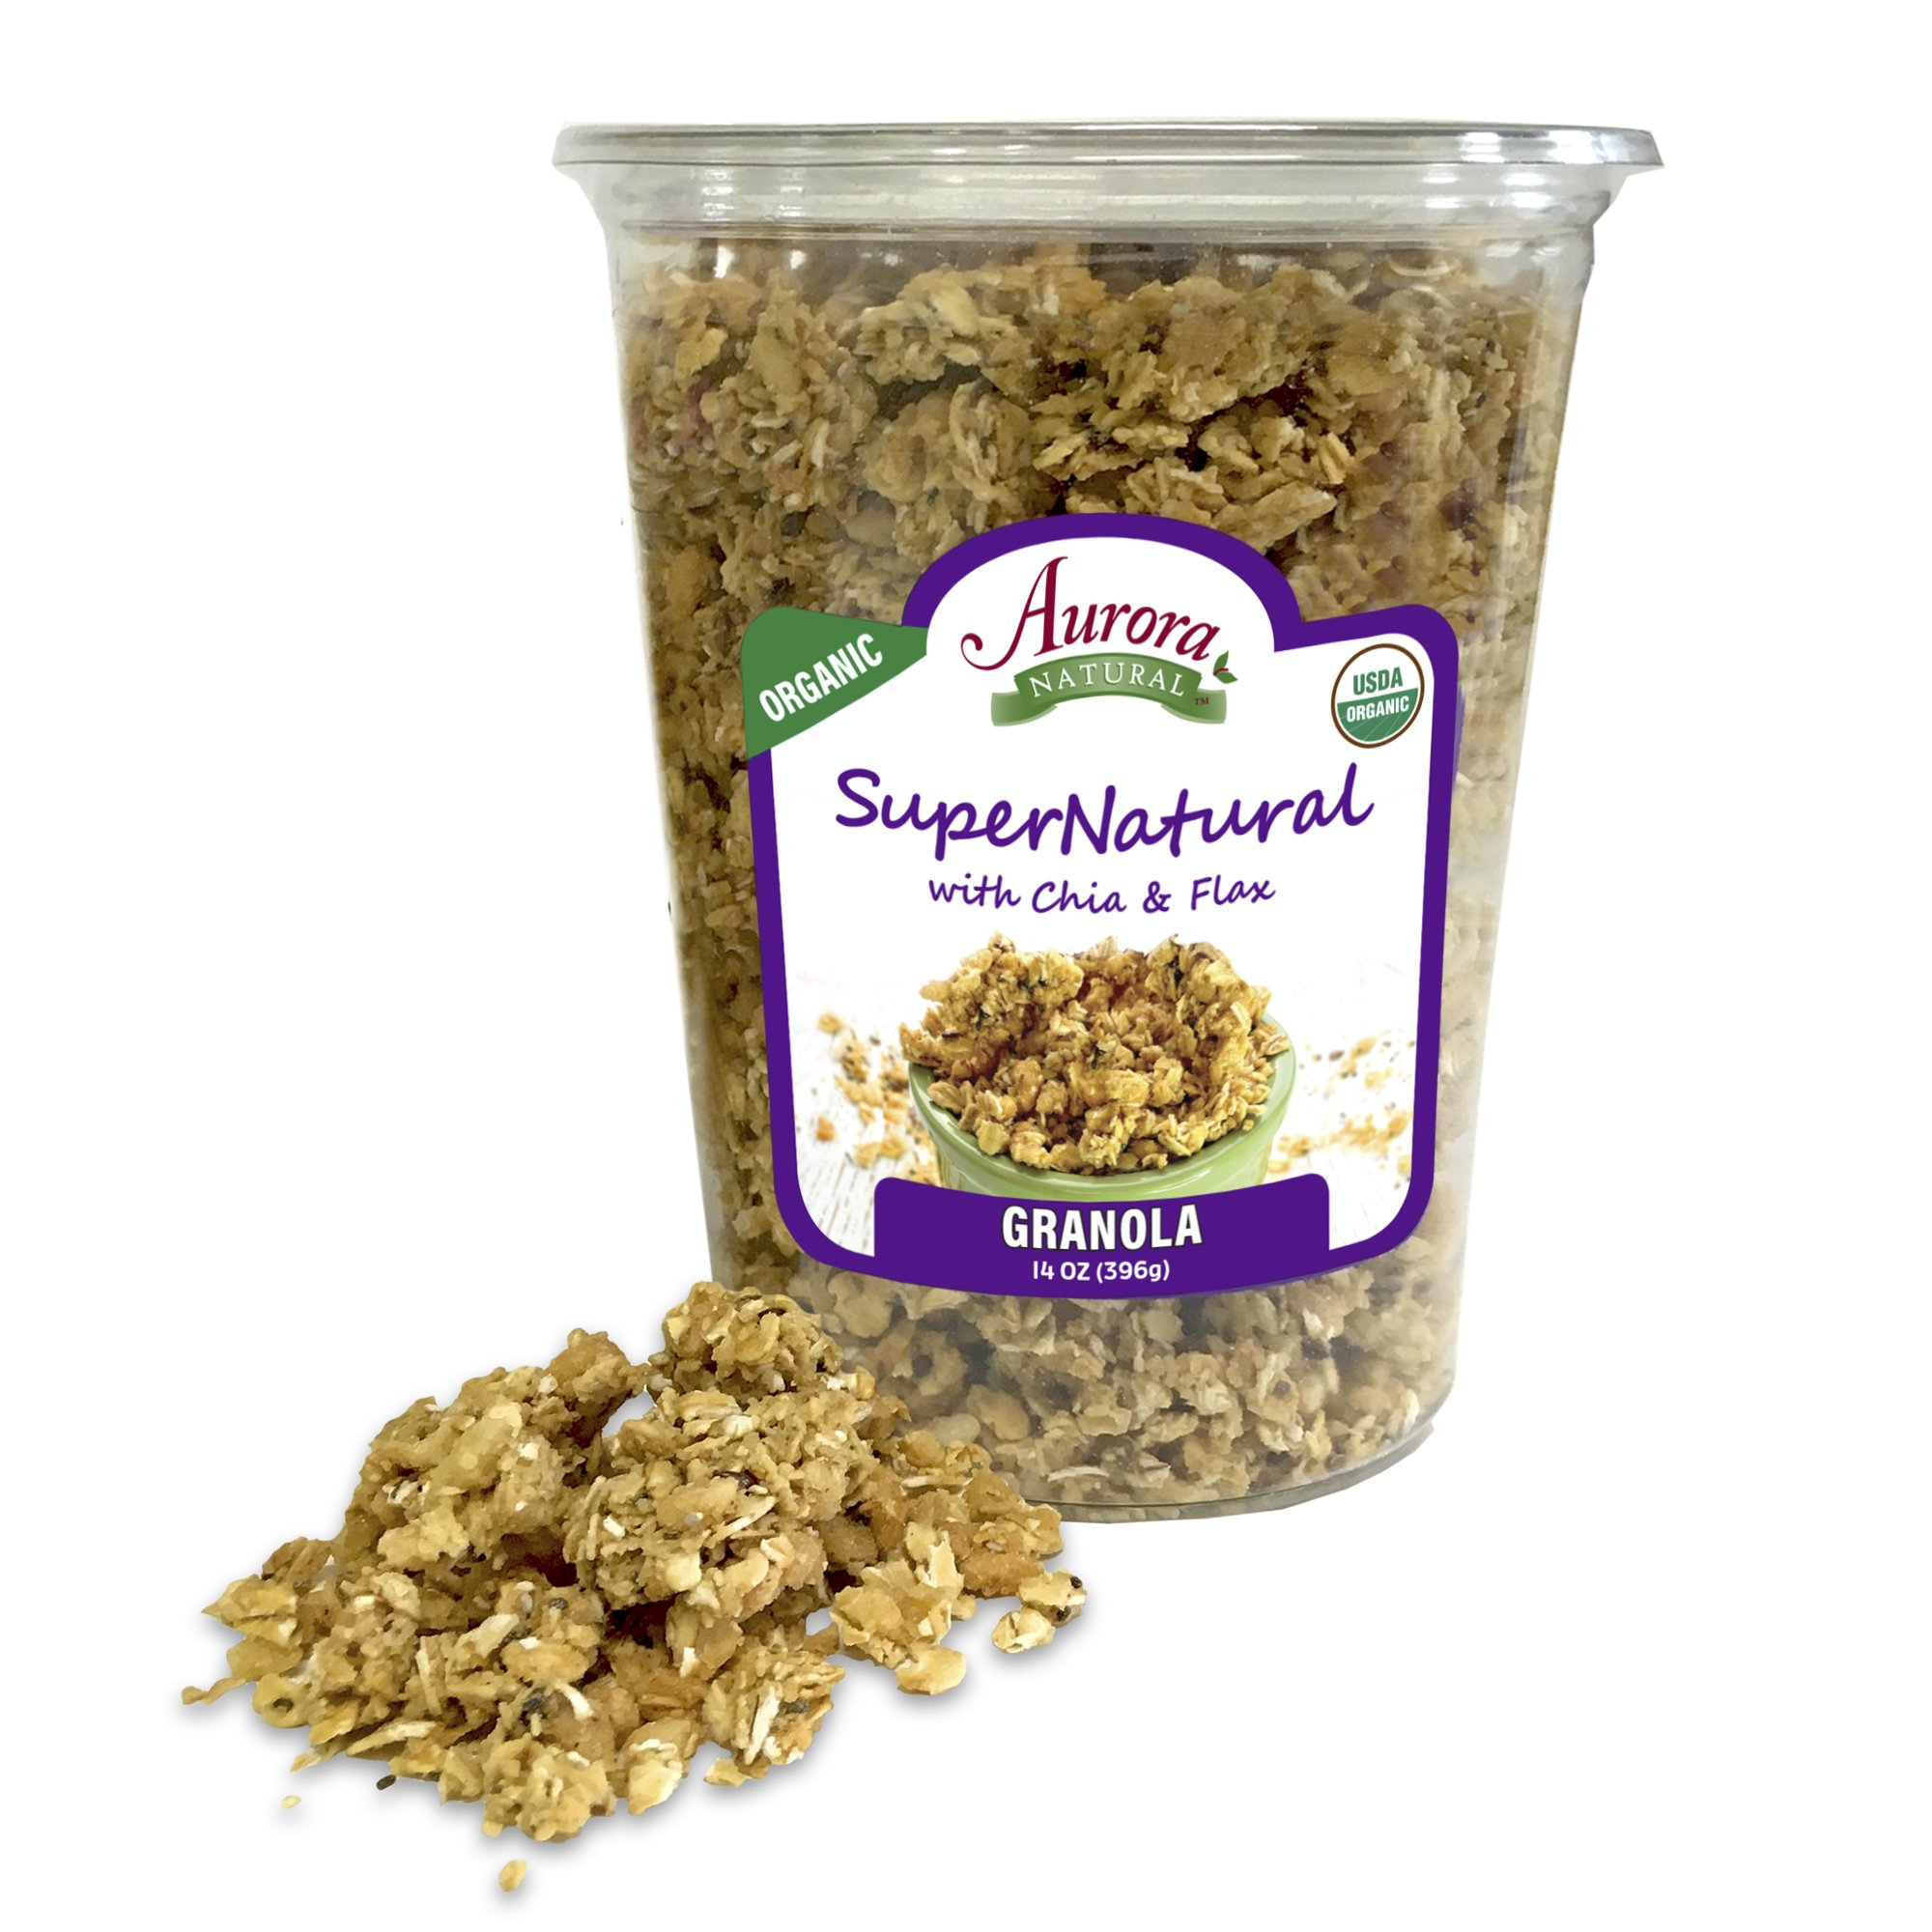 Aurora Natural Products Organic Supernatural Granola With Chia & Flax, 14 Ounce by Aurora Natural (Image #1)